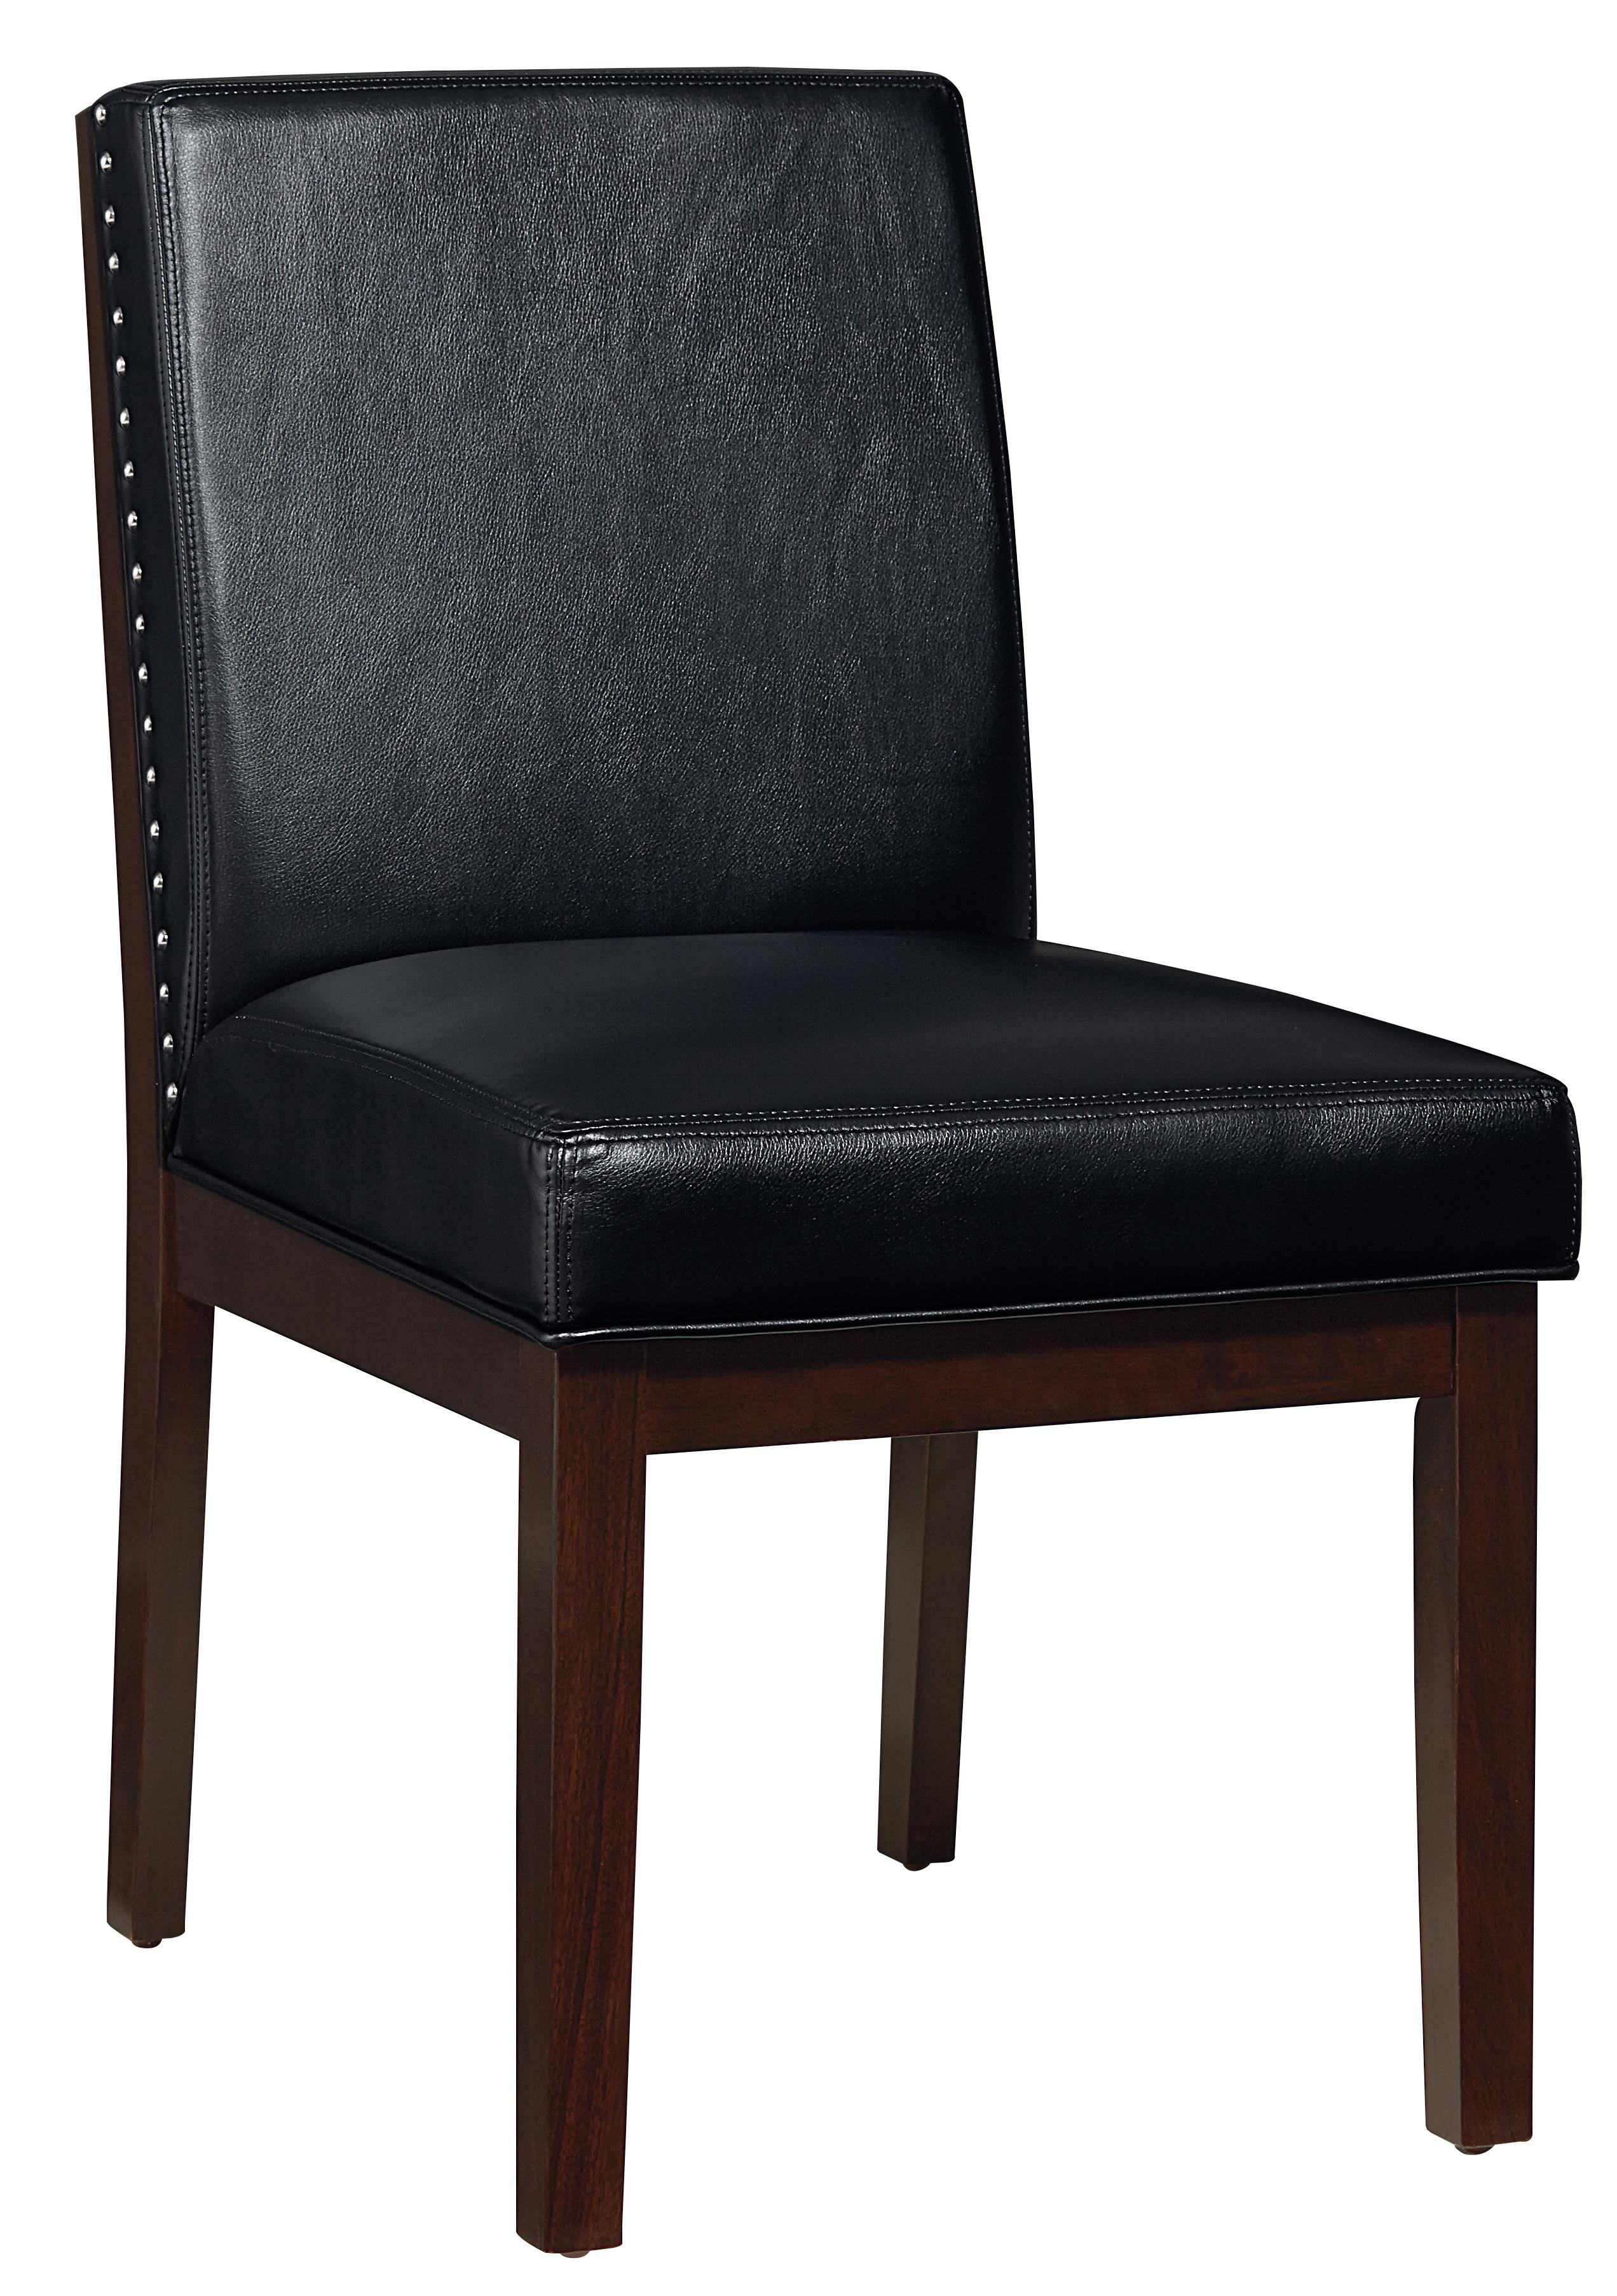 chair standards painted table and chairs images standard furniture couture elegance upholstered dining